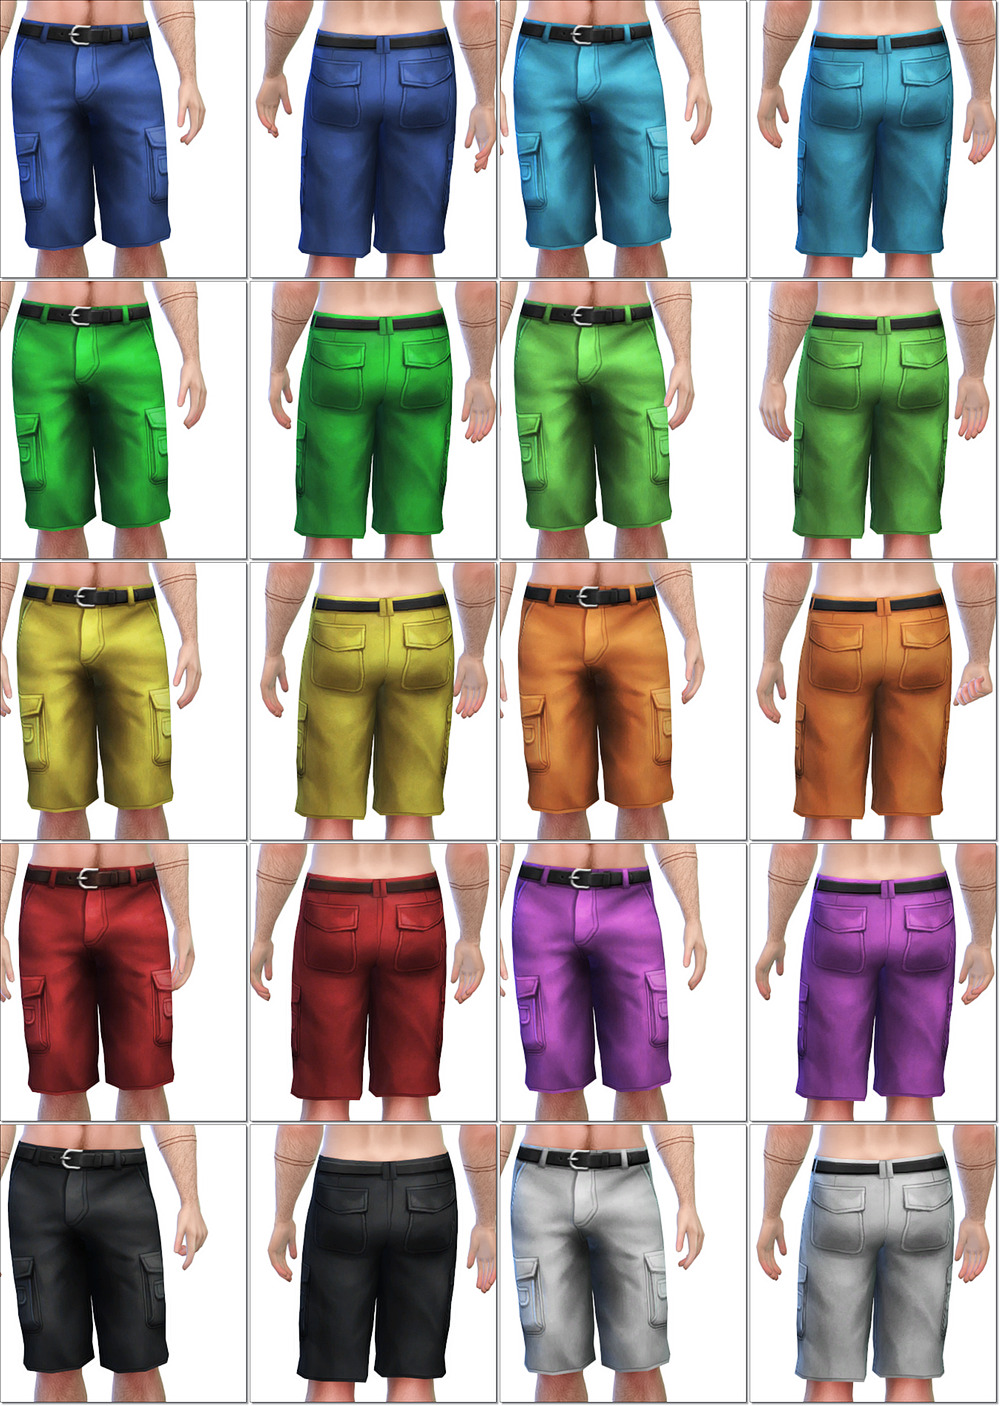 Men's Jeans Shorts by IntenseSims